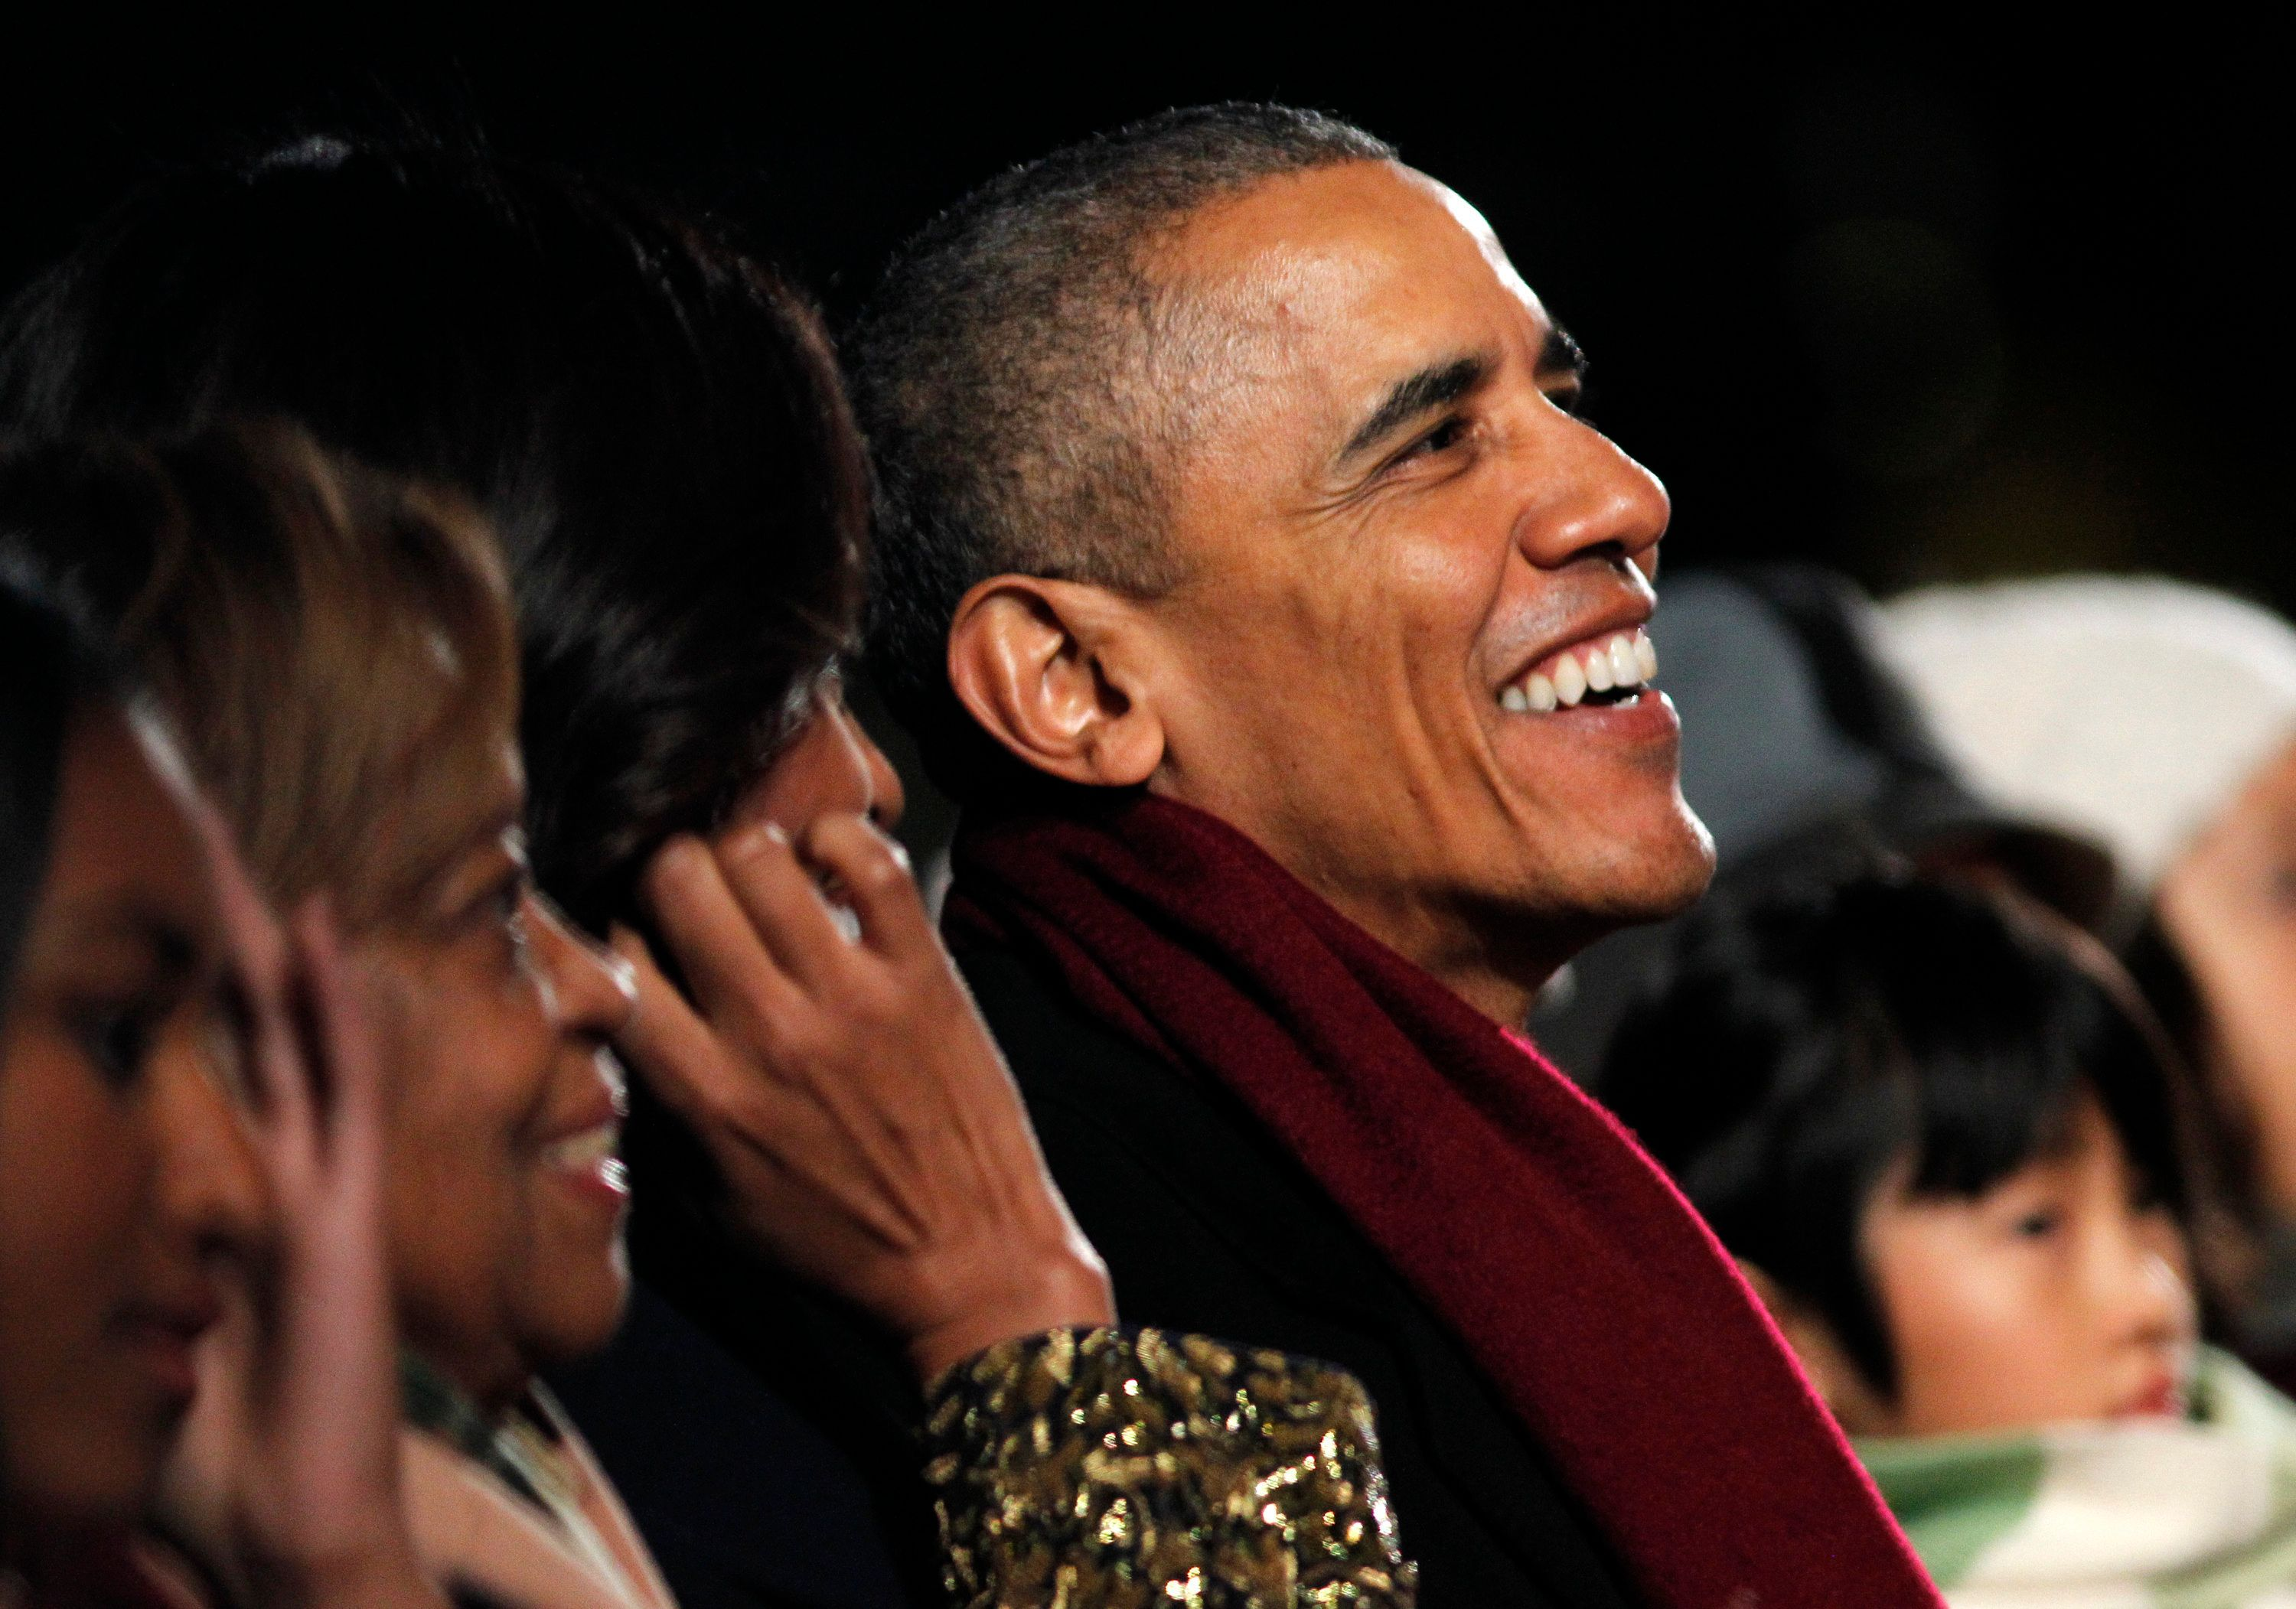 WASHINGTON, DC - DECEMBER 03:  U.S. President Barack Obama (R) shares a laugh with First Lady Michelle Obama during the 93rd Annual National Christmas Tree Lighting at The Ellipse on December 3, 2015 in Washington, DC.  (Photo by Paul Morigi/Getty Images)